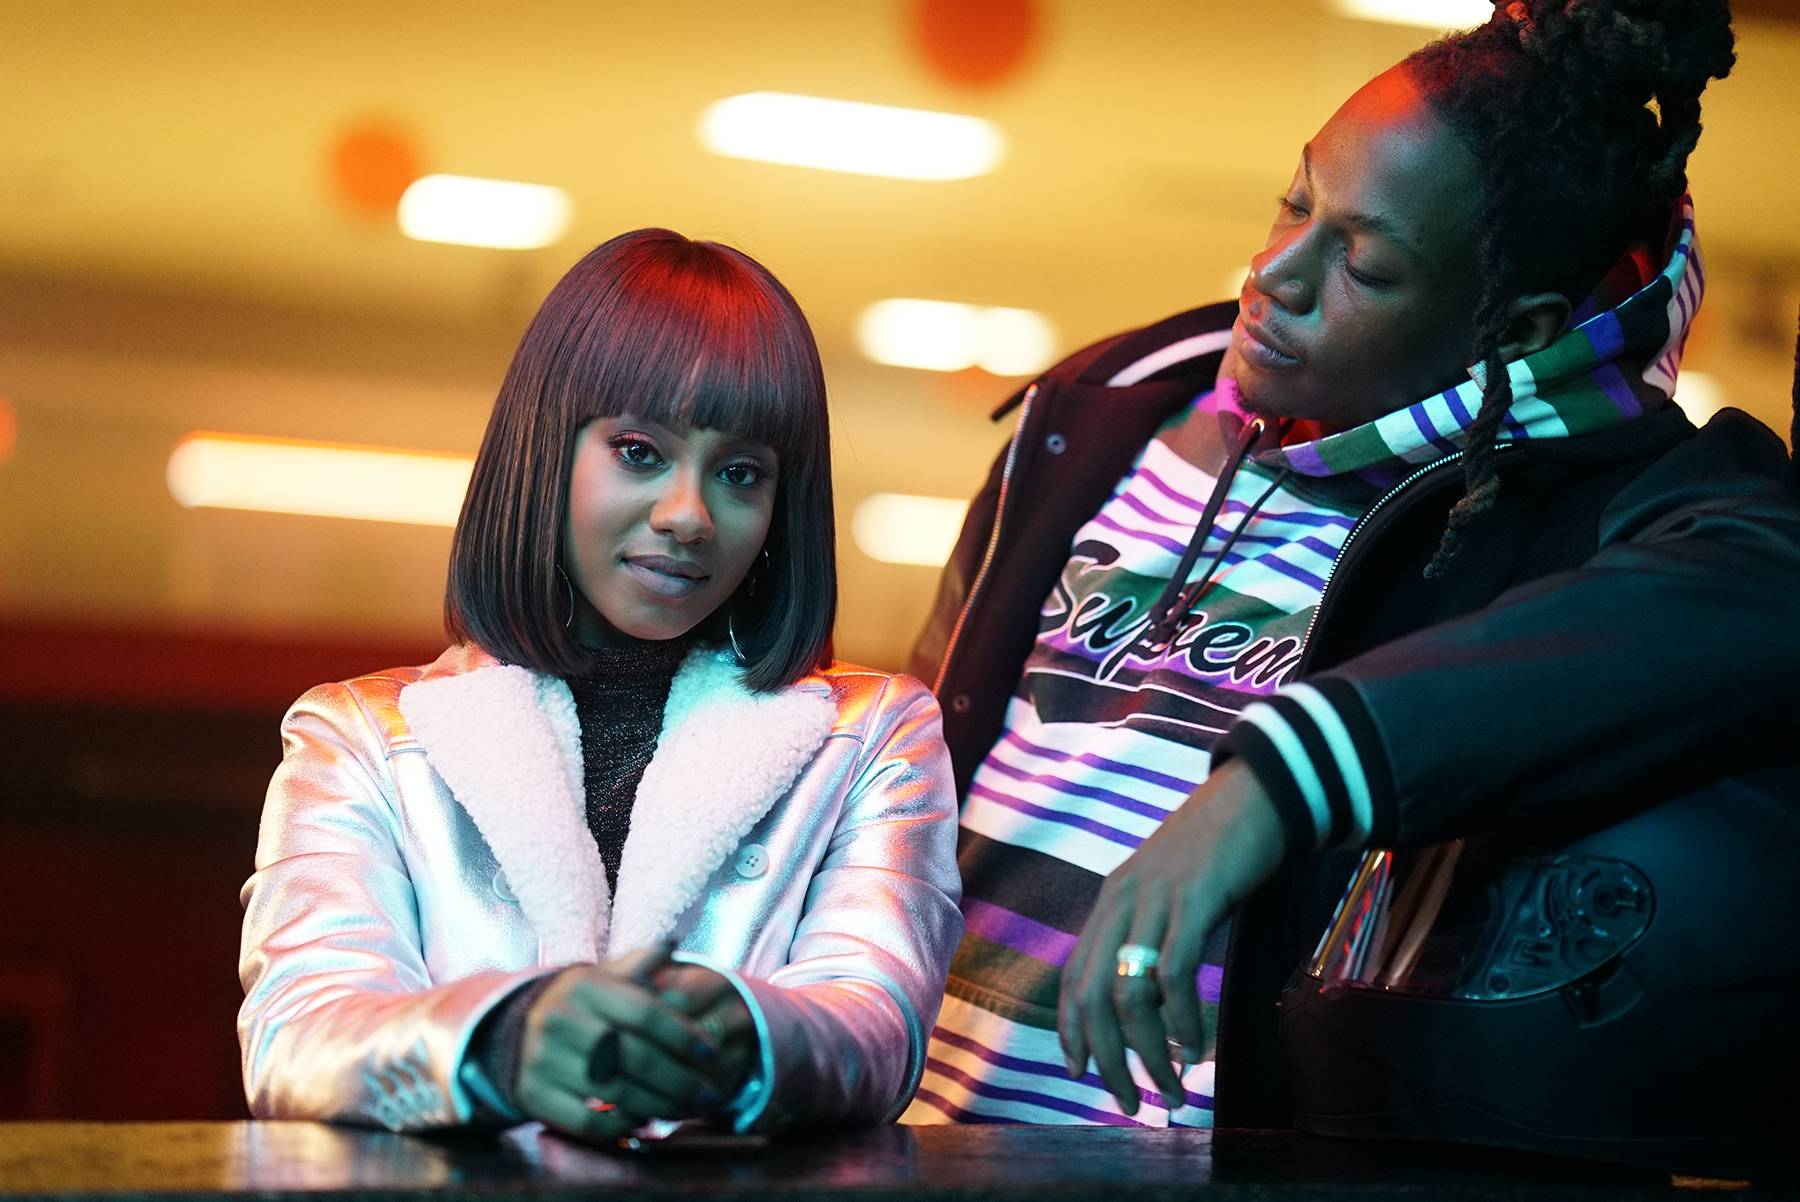 Meet the Cast of Boomerang - The chemistry is obvious between Tetona Jackson's Simone and Joey Bada$'s Camden.(Photogapher:Annette Brown/BET)